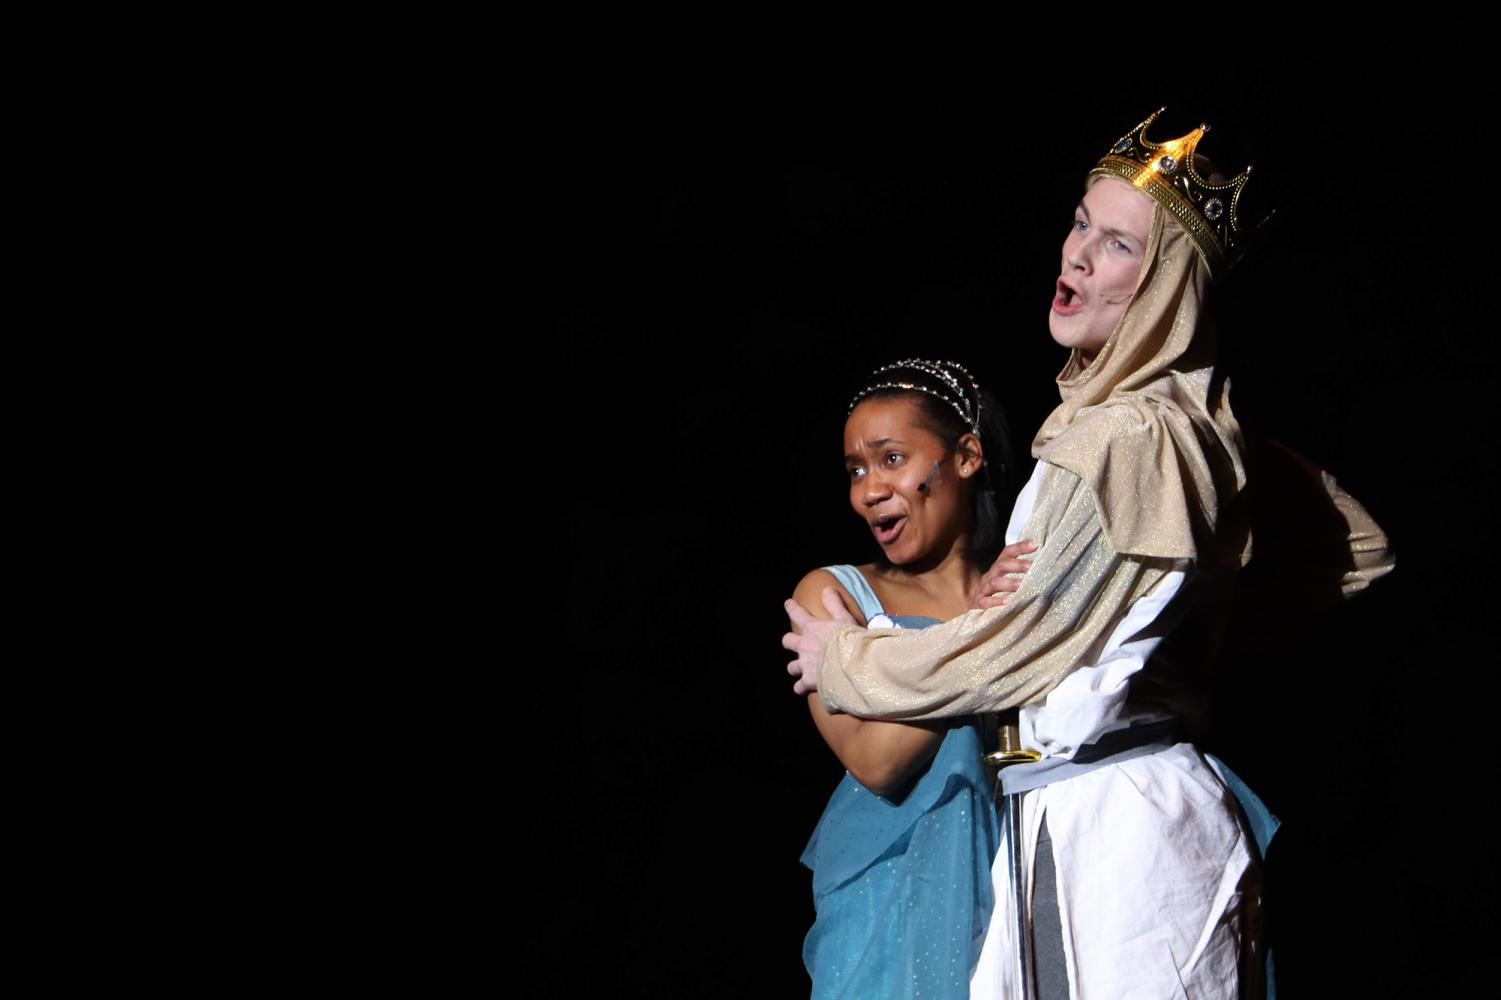 Playing+the+part%2C+senior+TIffani+Smith+holds+onto+junior+Jack+Malin+in+the+winter+production+of+Spamalot.+Smith+played+the+character+Lady+of+the+Lake+while+Malin+played+King+Arthur.+%22It%E2%80%99s+was+a+lot+of+hard+work+and+a+big+time+commitment.+You+really+had+to+balance+your+time+out+and+priorities+always+came+first%2C%22+Smith+said.+%22I+really+enjoyed+getting+to+know+the+cast.+Most+people+I+didn%E2%80%99t+really+have+classes+or+activities+with+so+I+made+lots+of+new+friends.%22